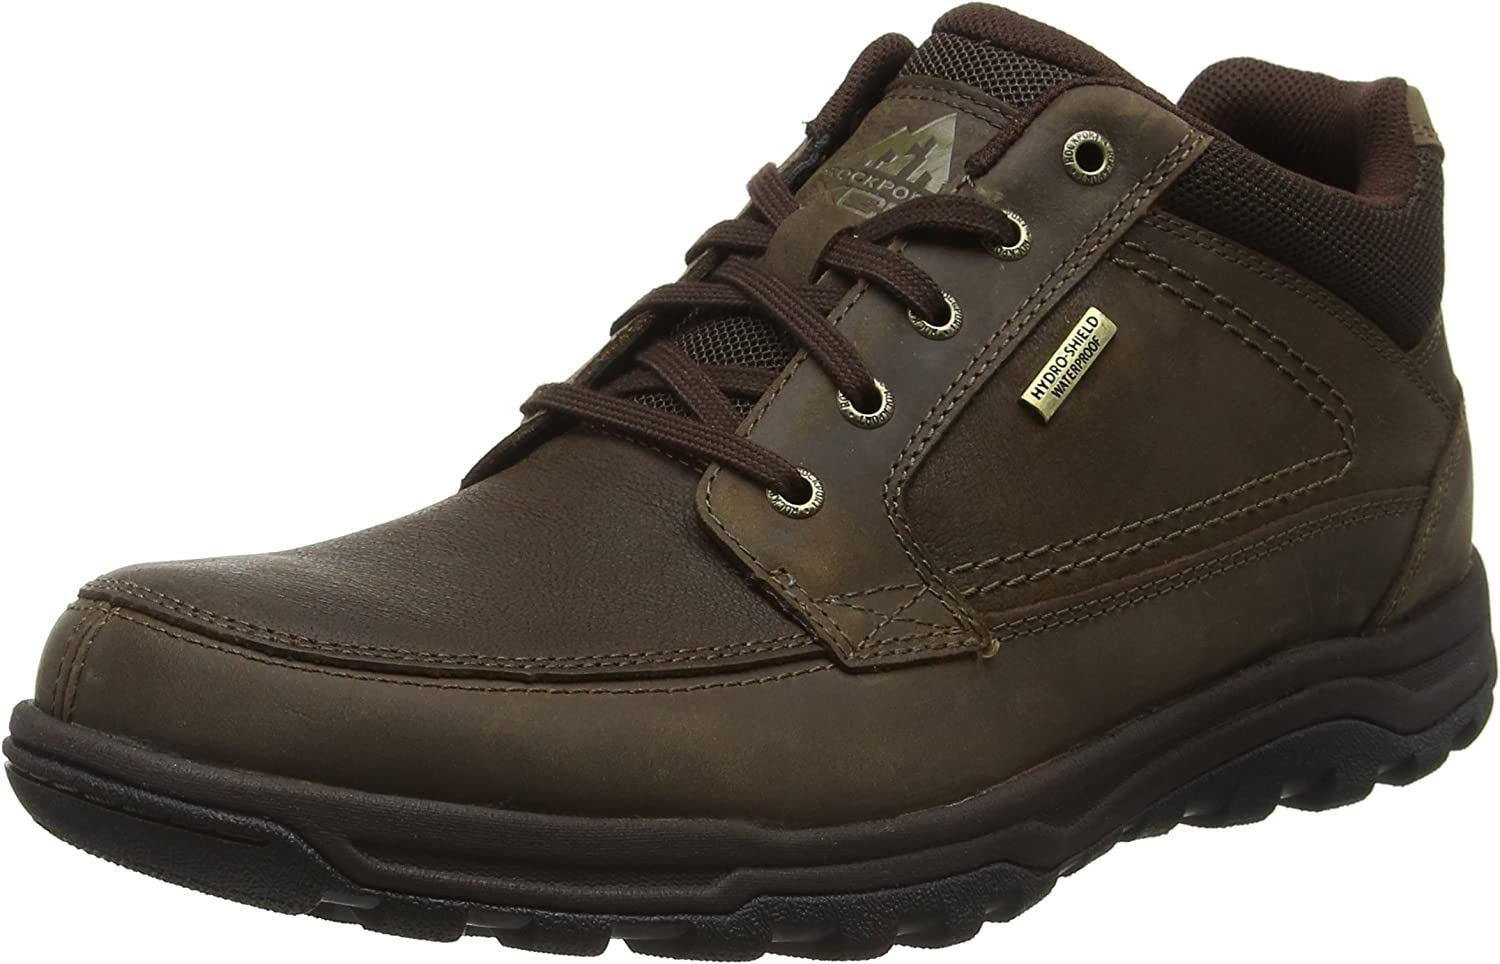 Rockport Trail Technique Waterproof Chukka, Botines para Hombre